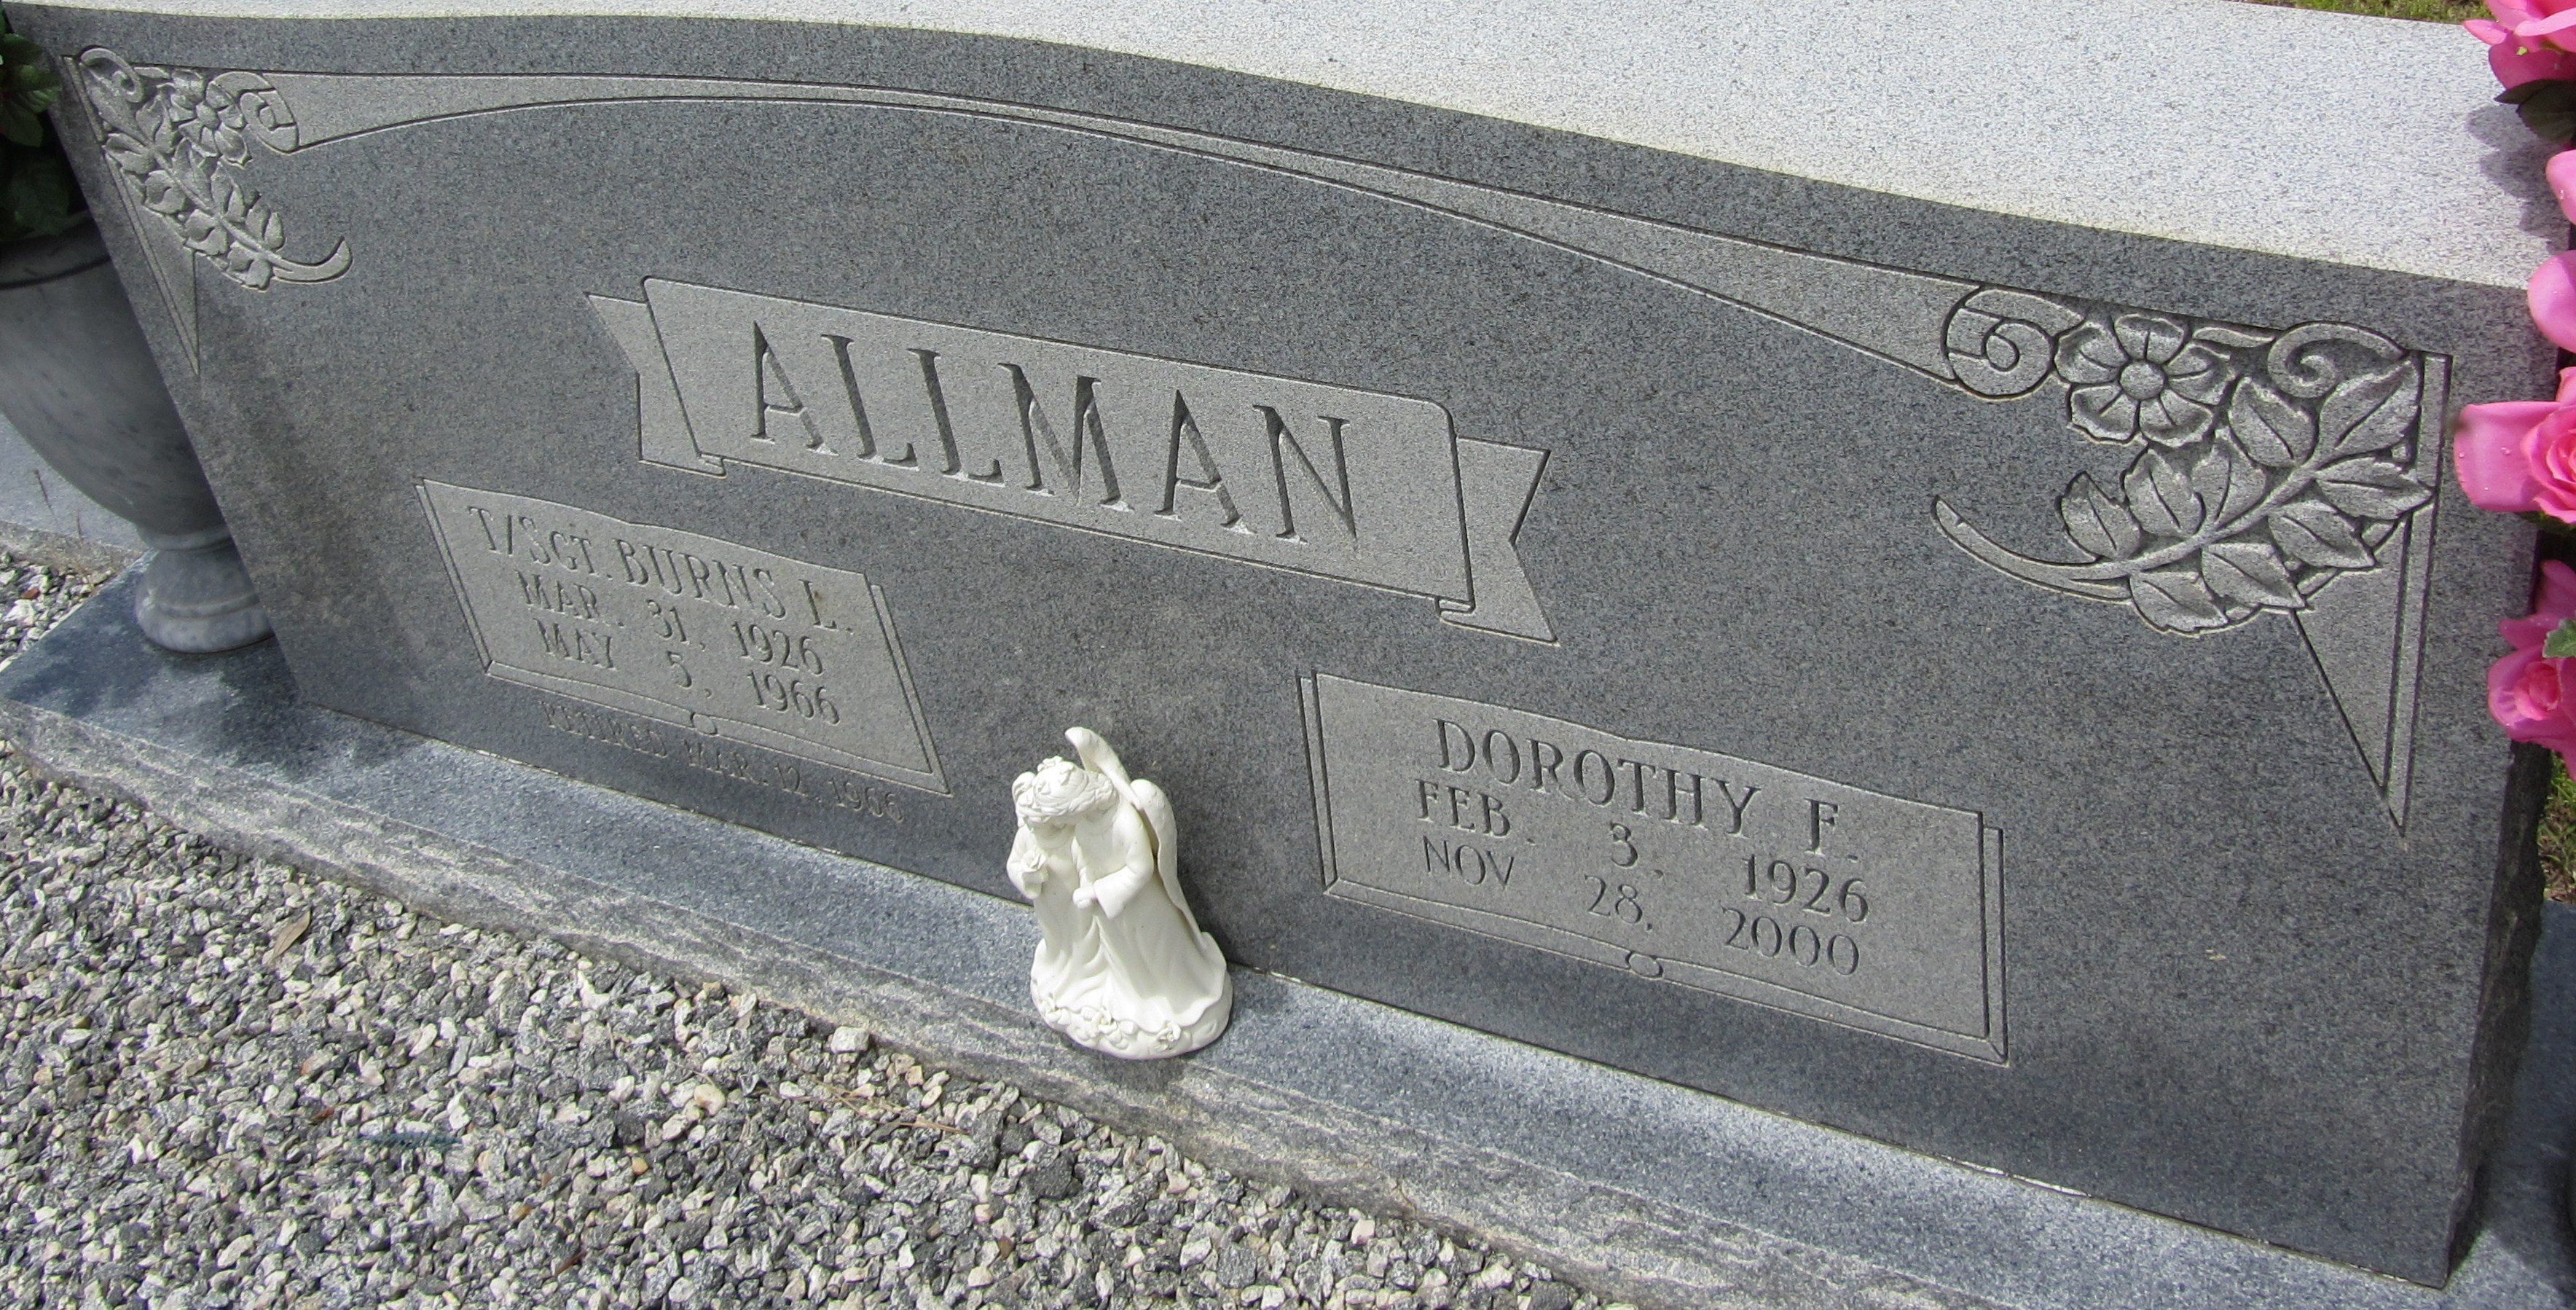 Burns L. Allman